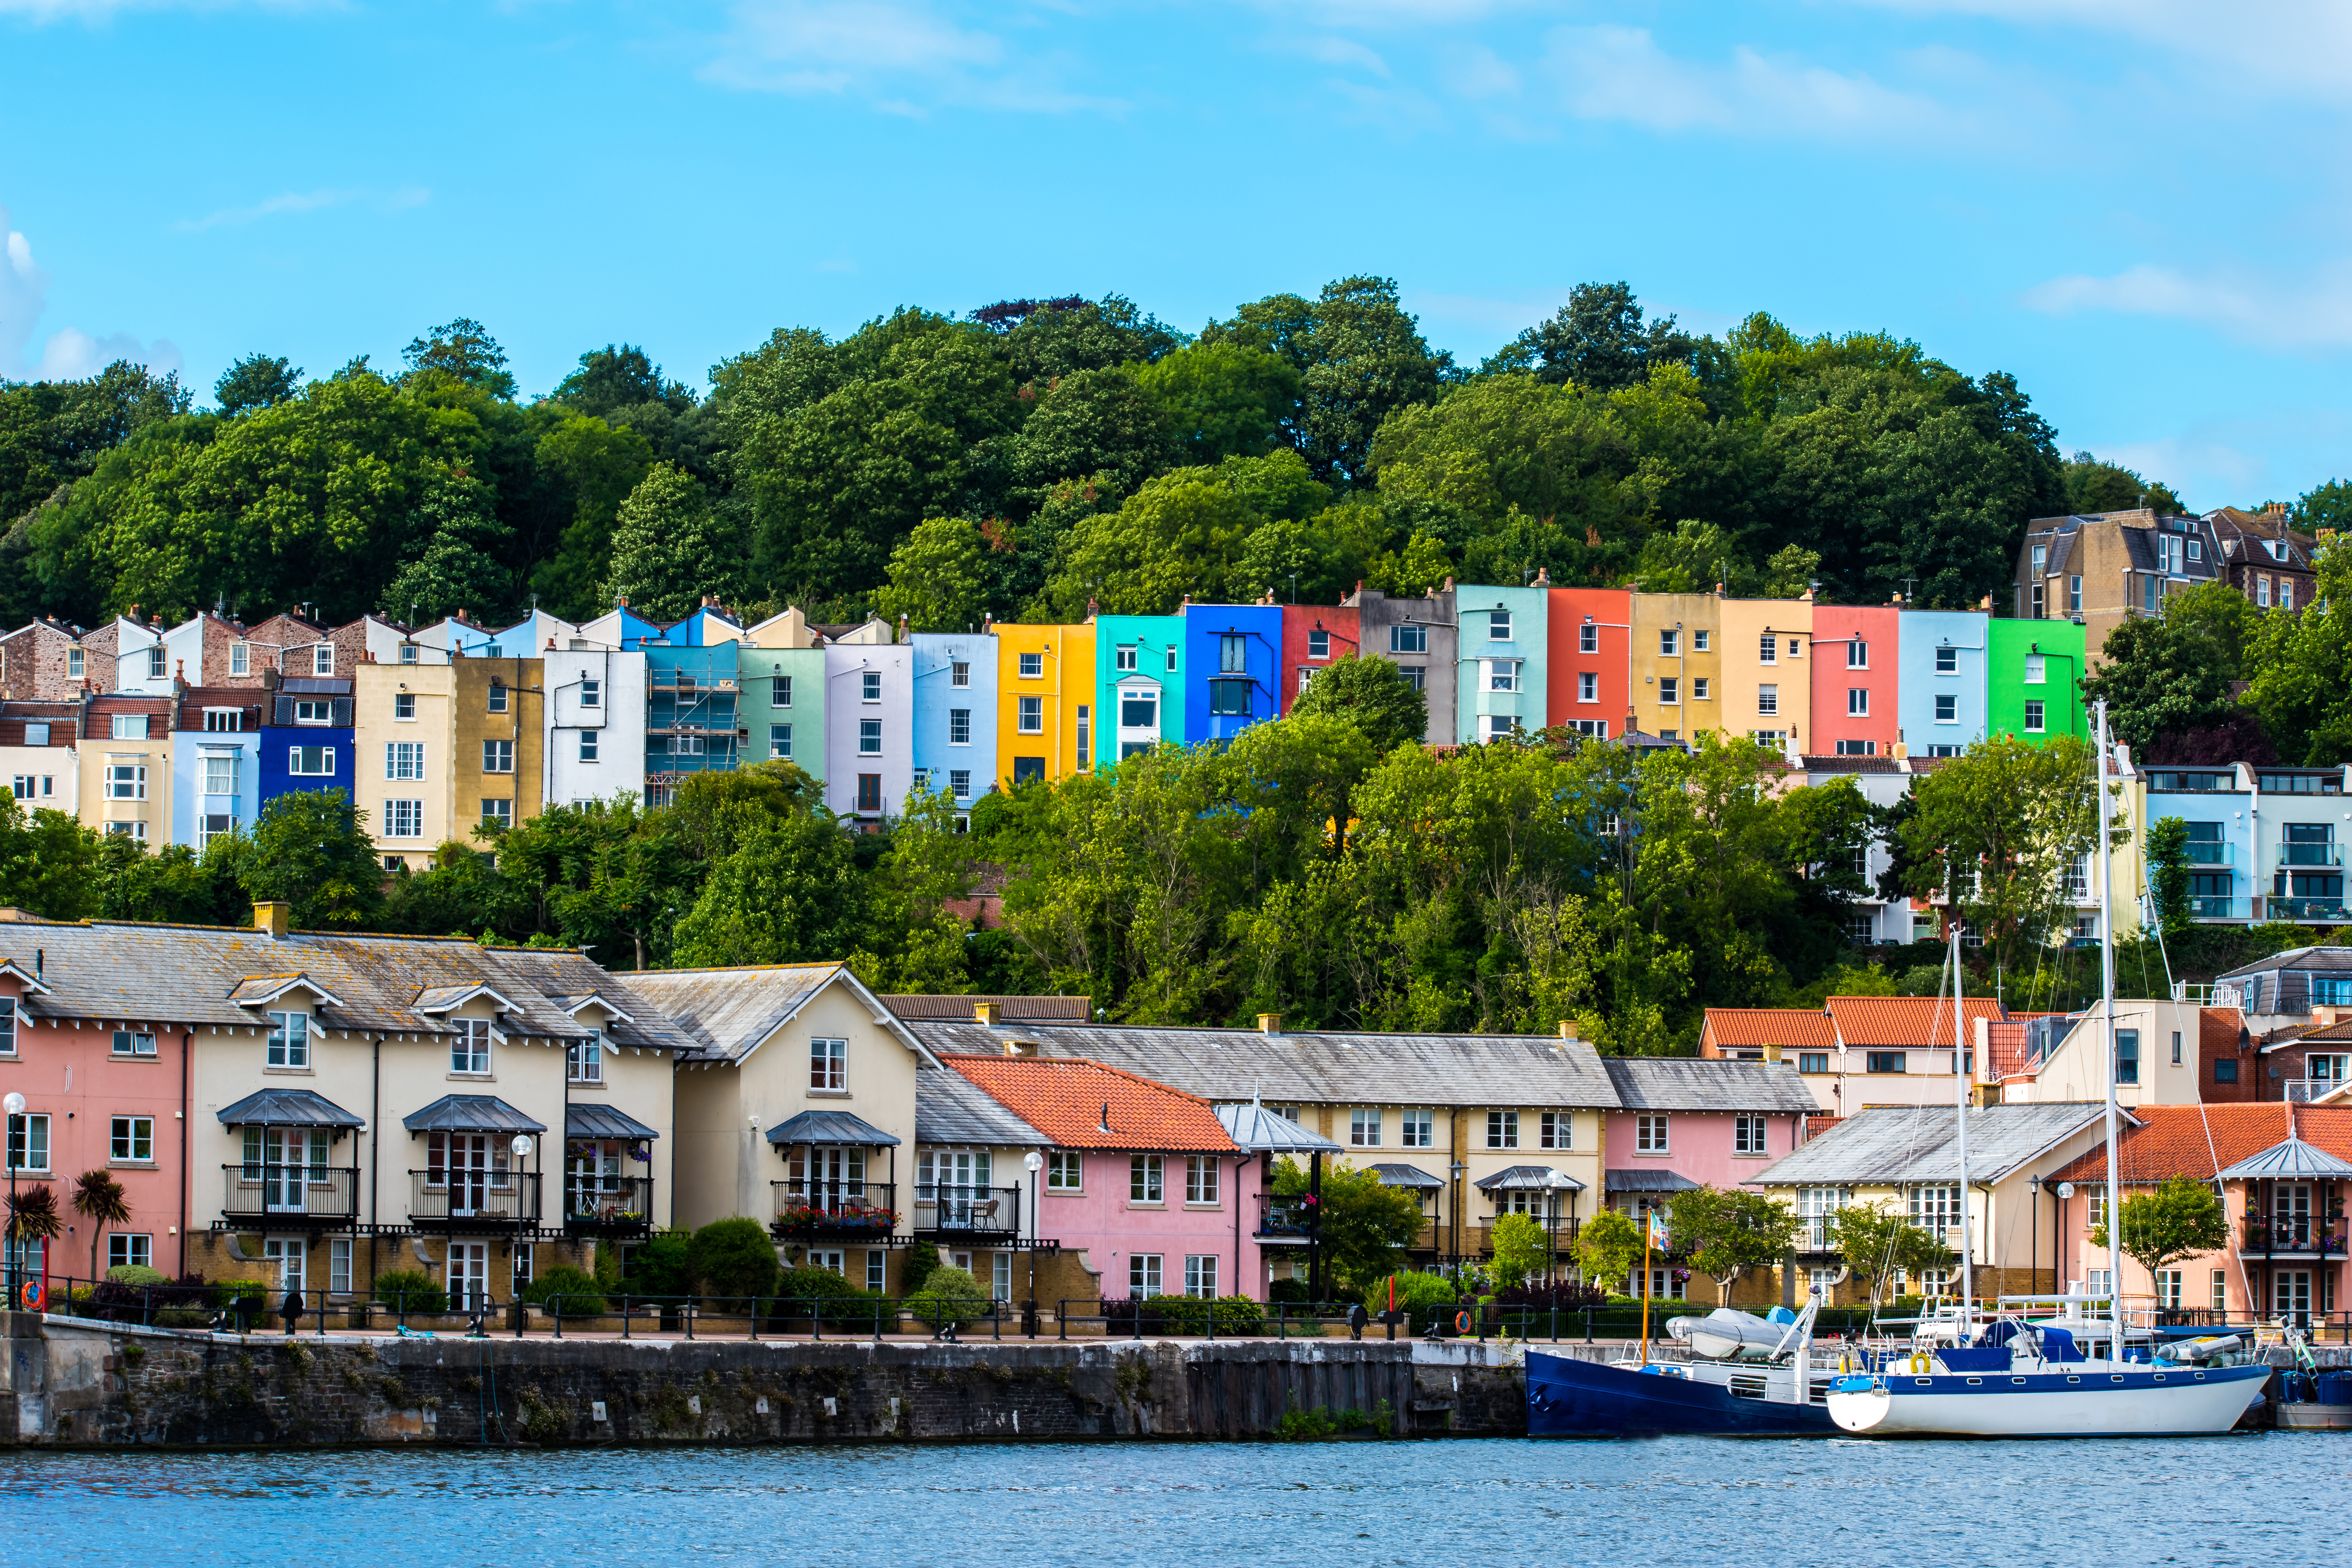 Multicoloured houses overlooking the water in Bristol with boat